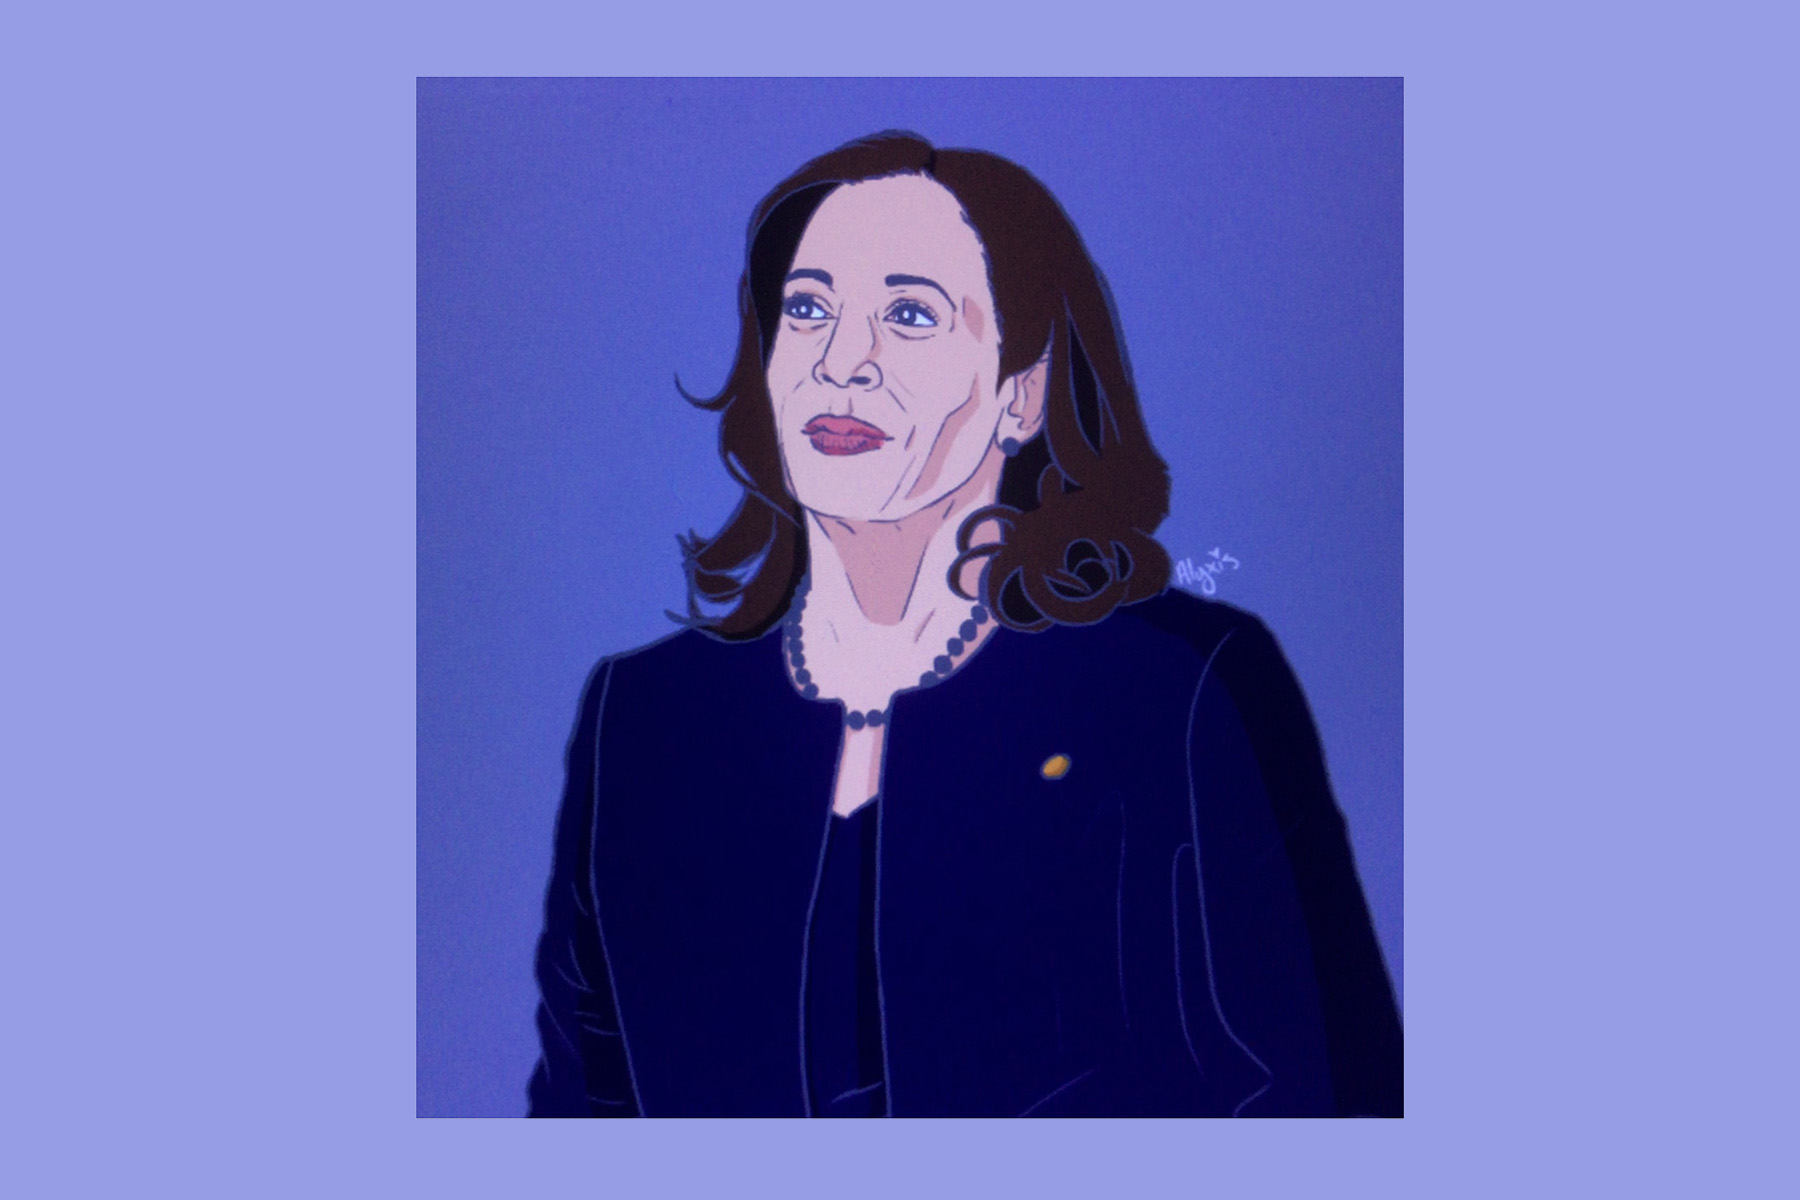 Illustration of Kamala Harris with a blue and purple background, by Alyxis Wilson.